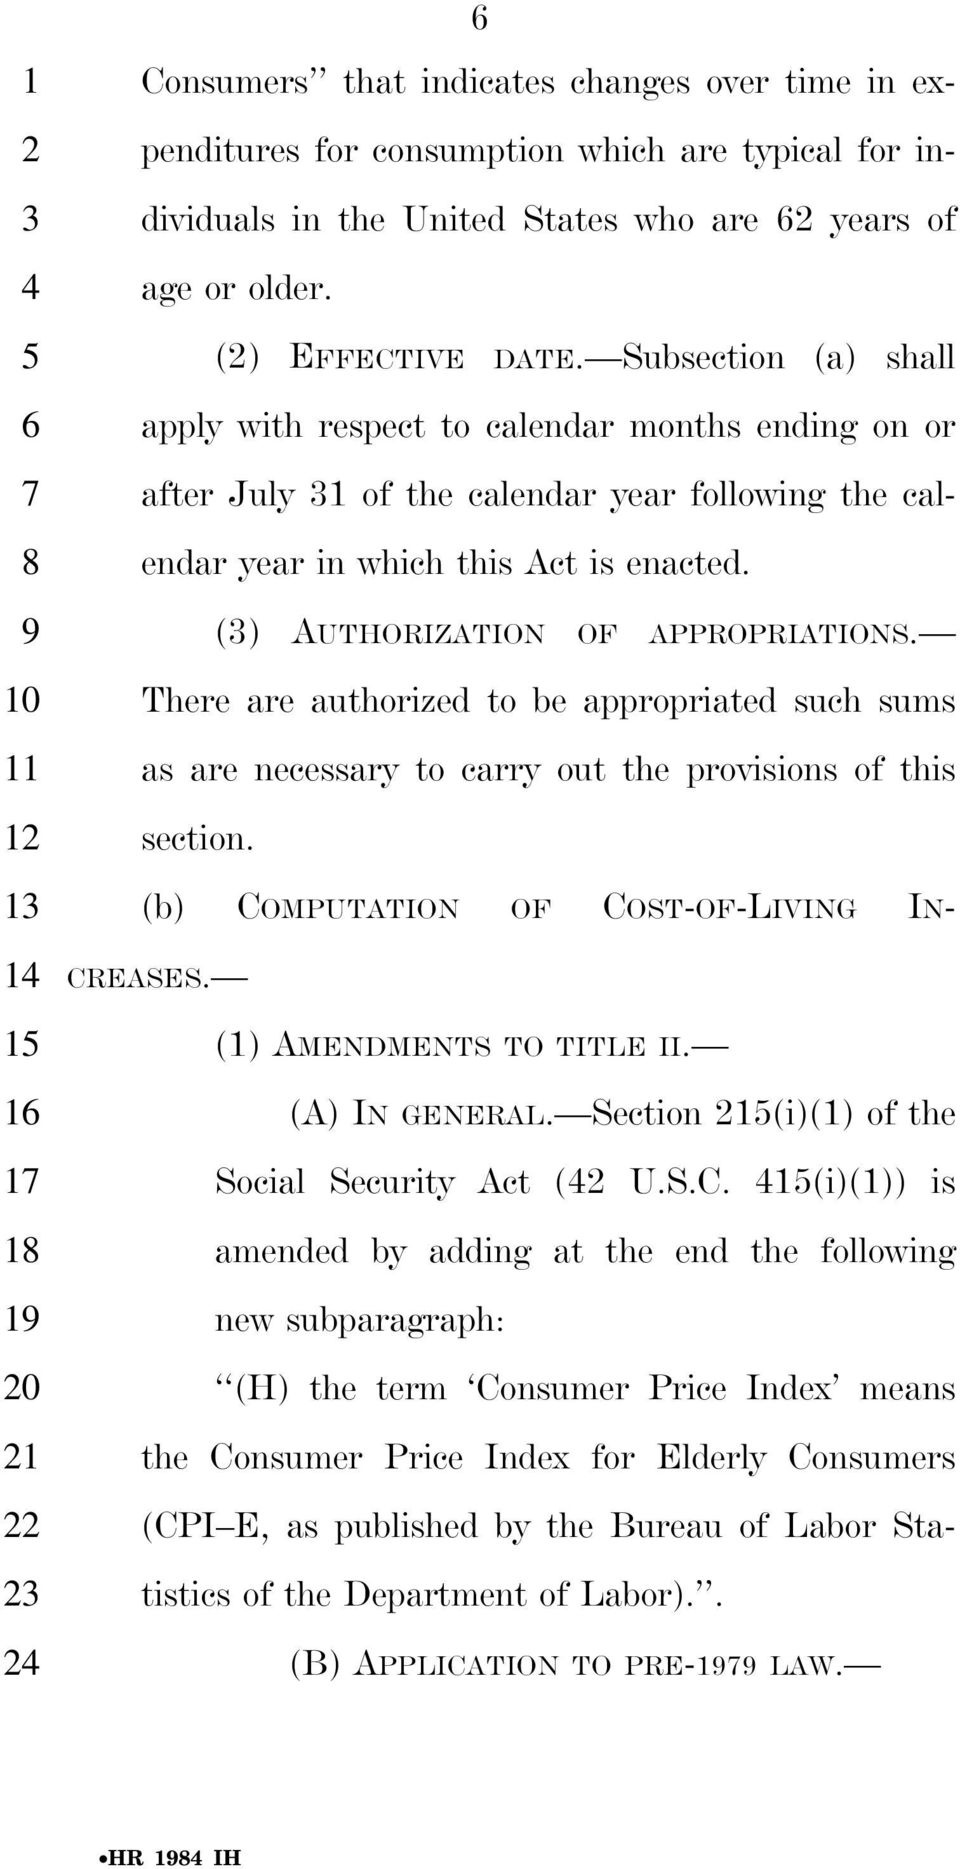 2 2 () AUTHORIZATION OF APPROPRIATIONS. There are authorized to be appropriated such sums as are necessary to carry out the provisions of this section. (b) COMPUTATION OF COST-OF-LIVING IN- CREASES.